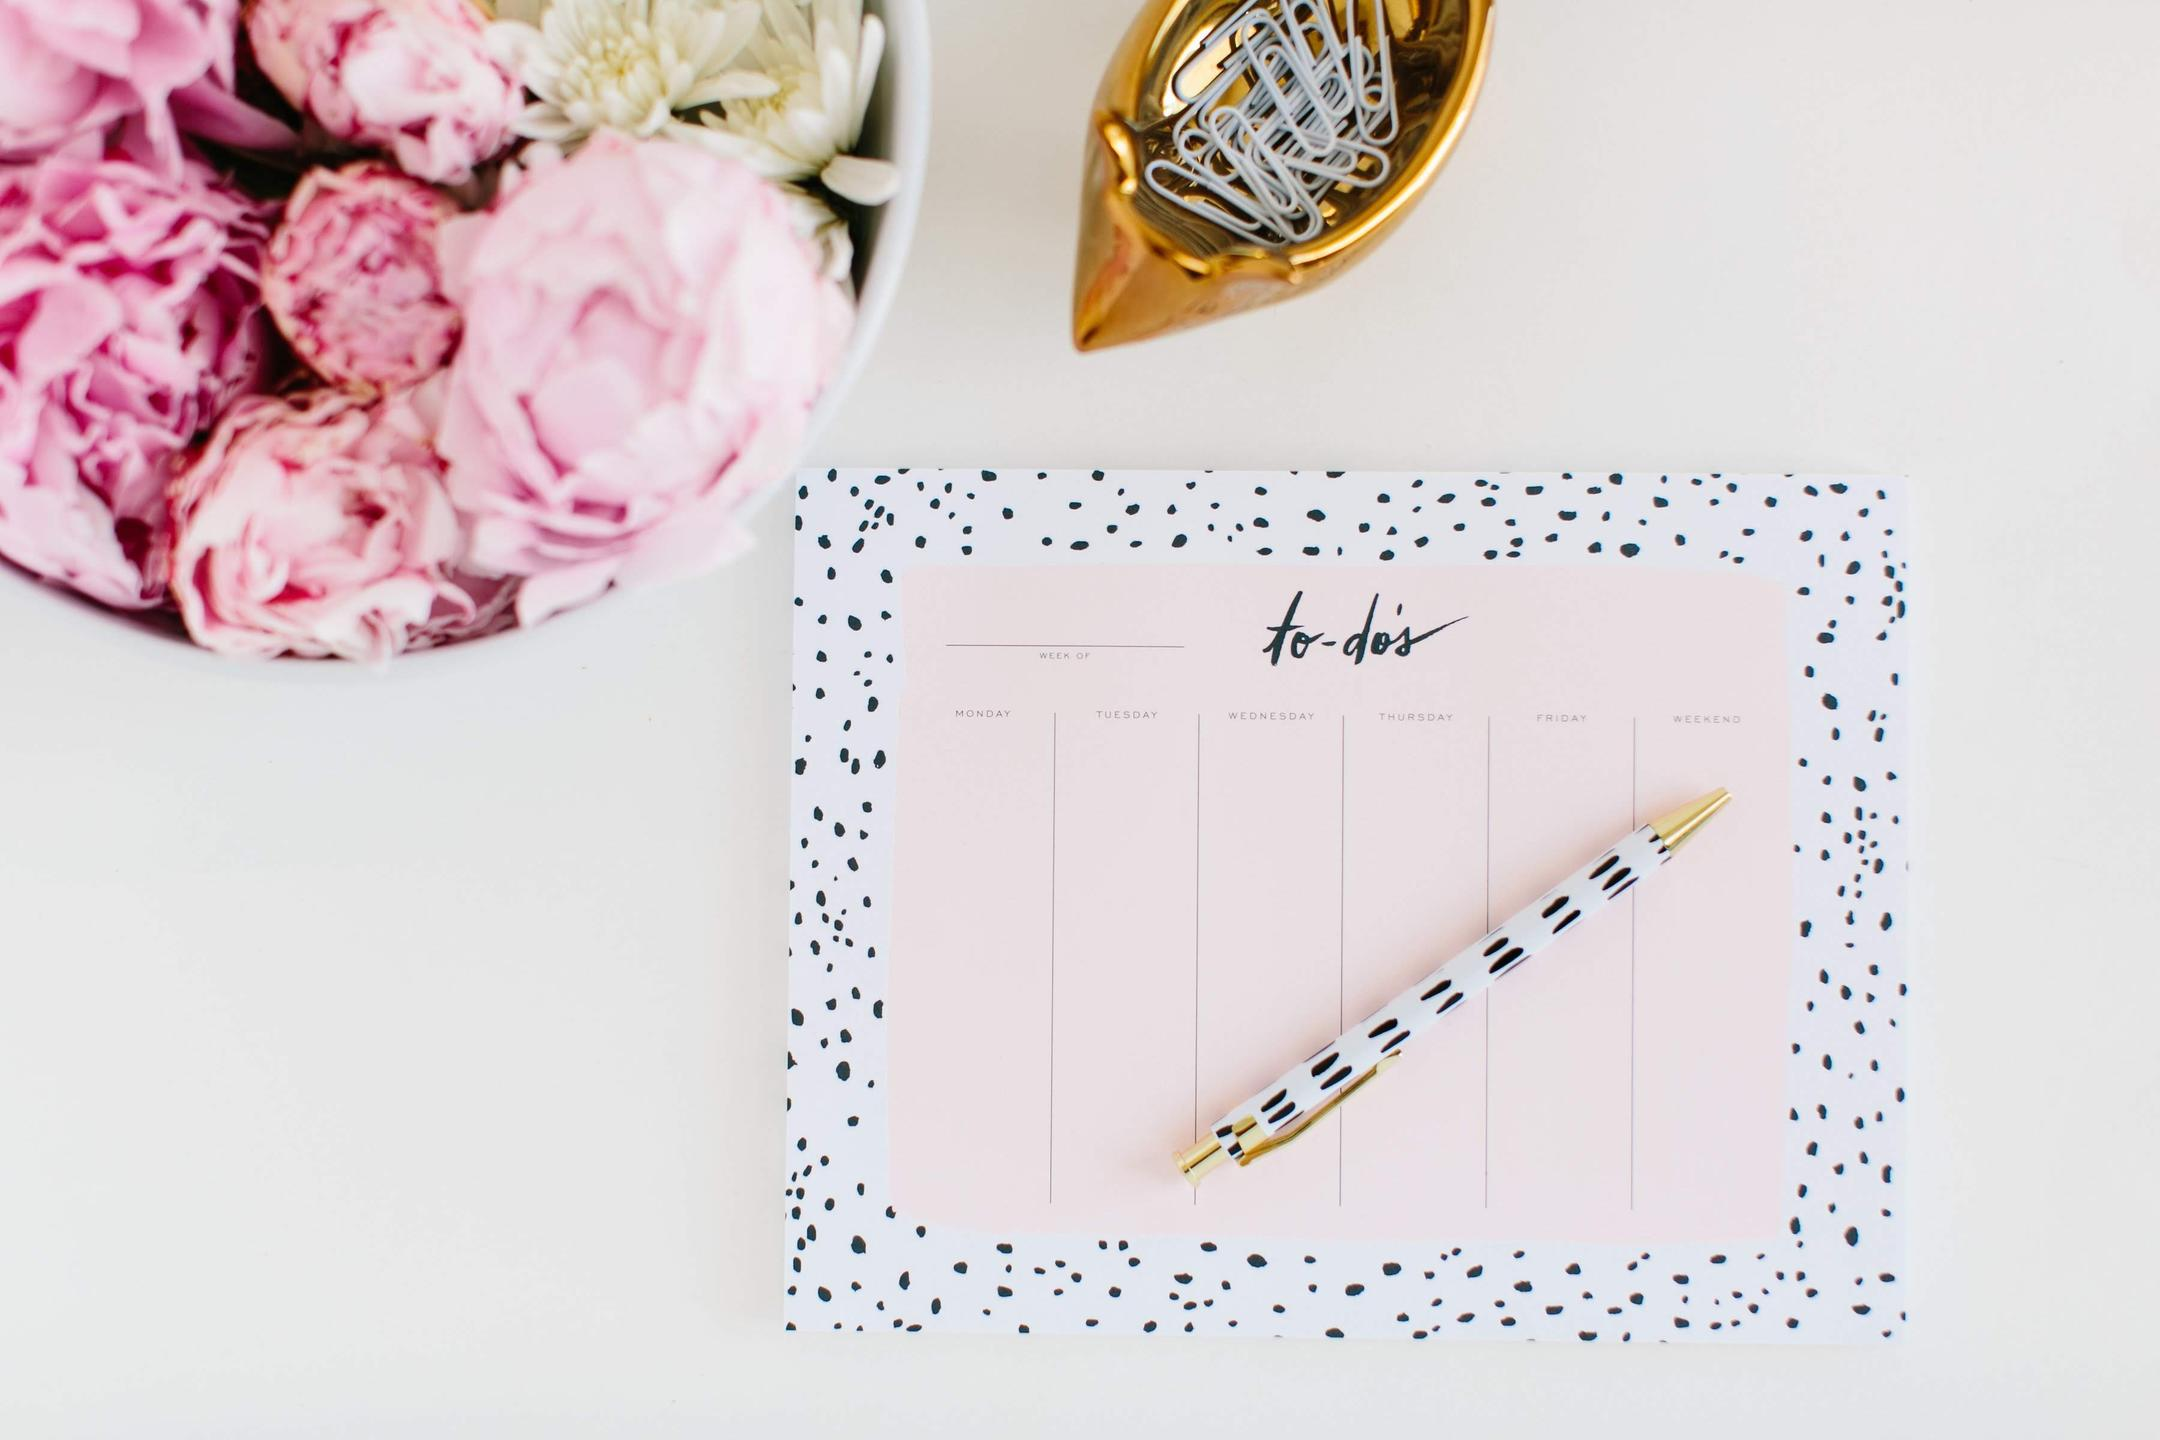 A cheerful to-do list with stylish pen surrounded by pink peonies and a gold mouse filled with paperclips